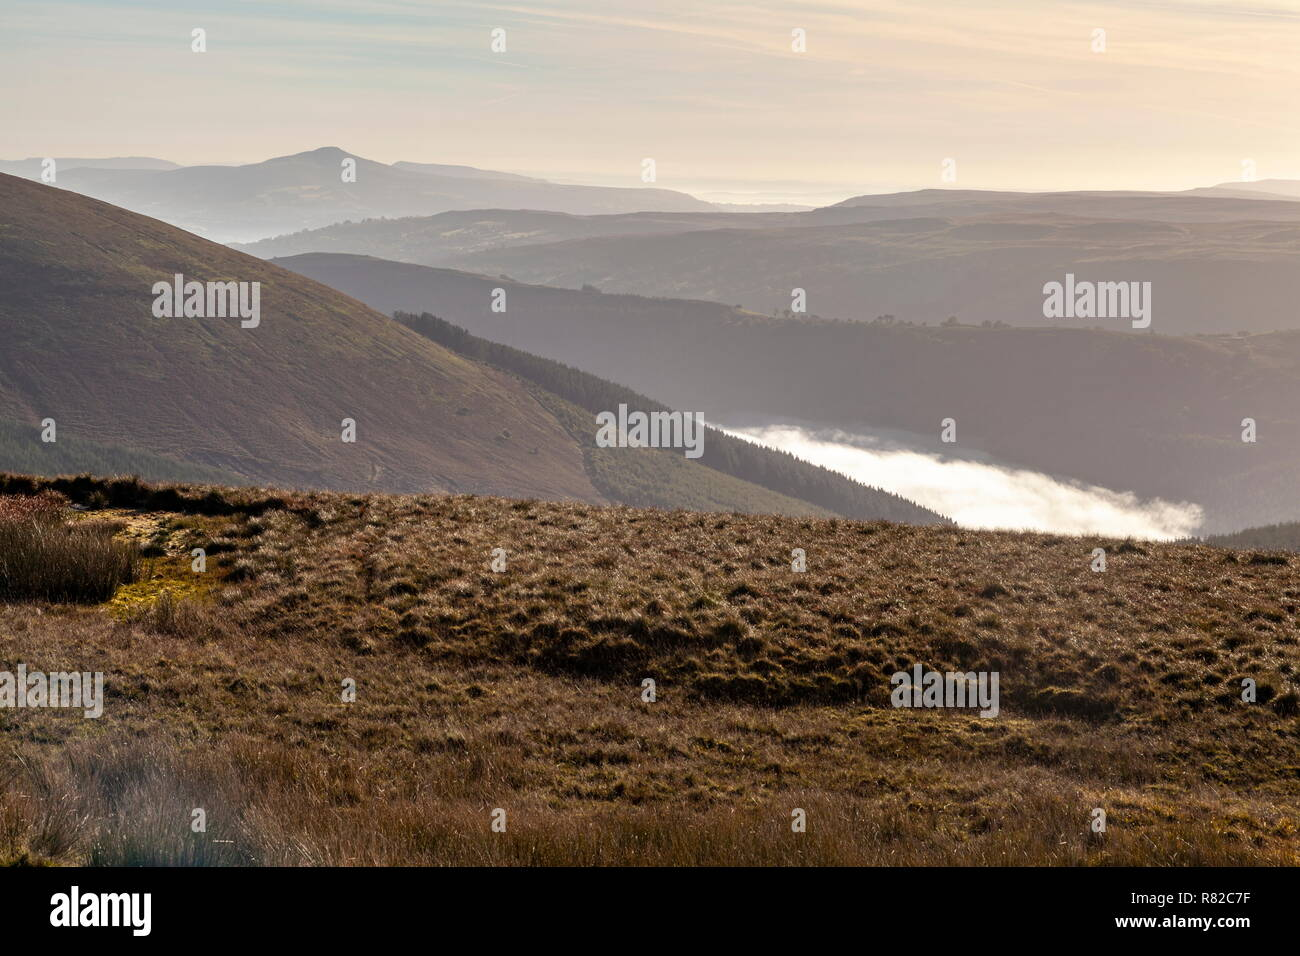 Early morning fog can be seen in the valley near Talybont reservoir, viewed from the summit of Torpantau, Brecon Beacons National Park - Stock Image